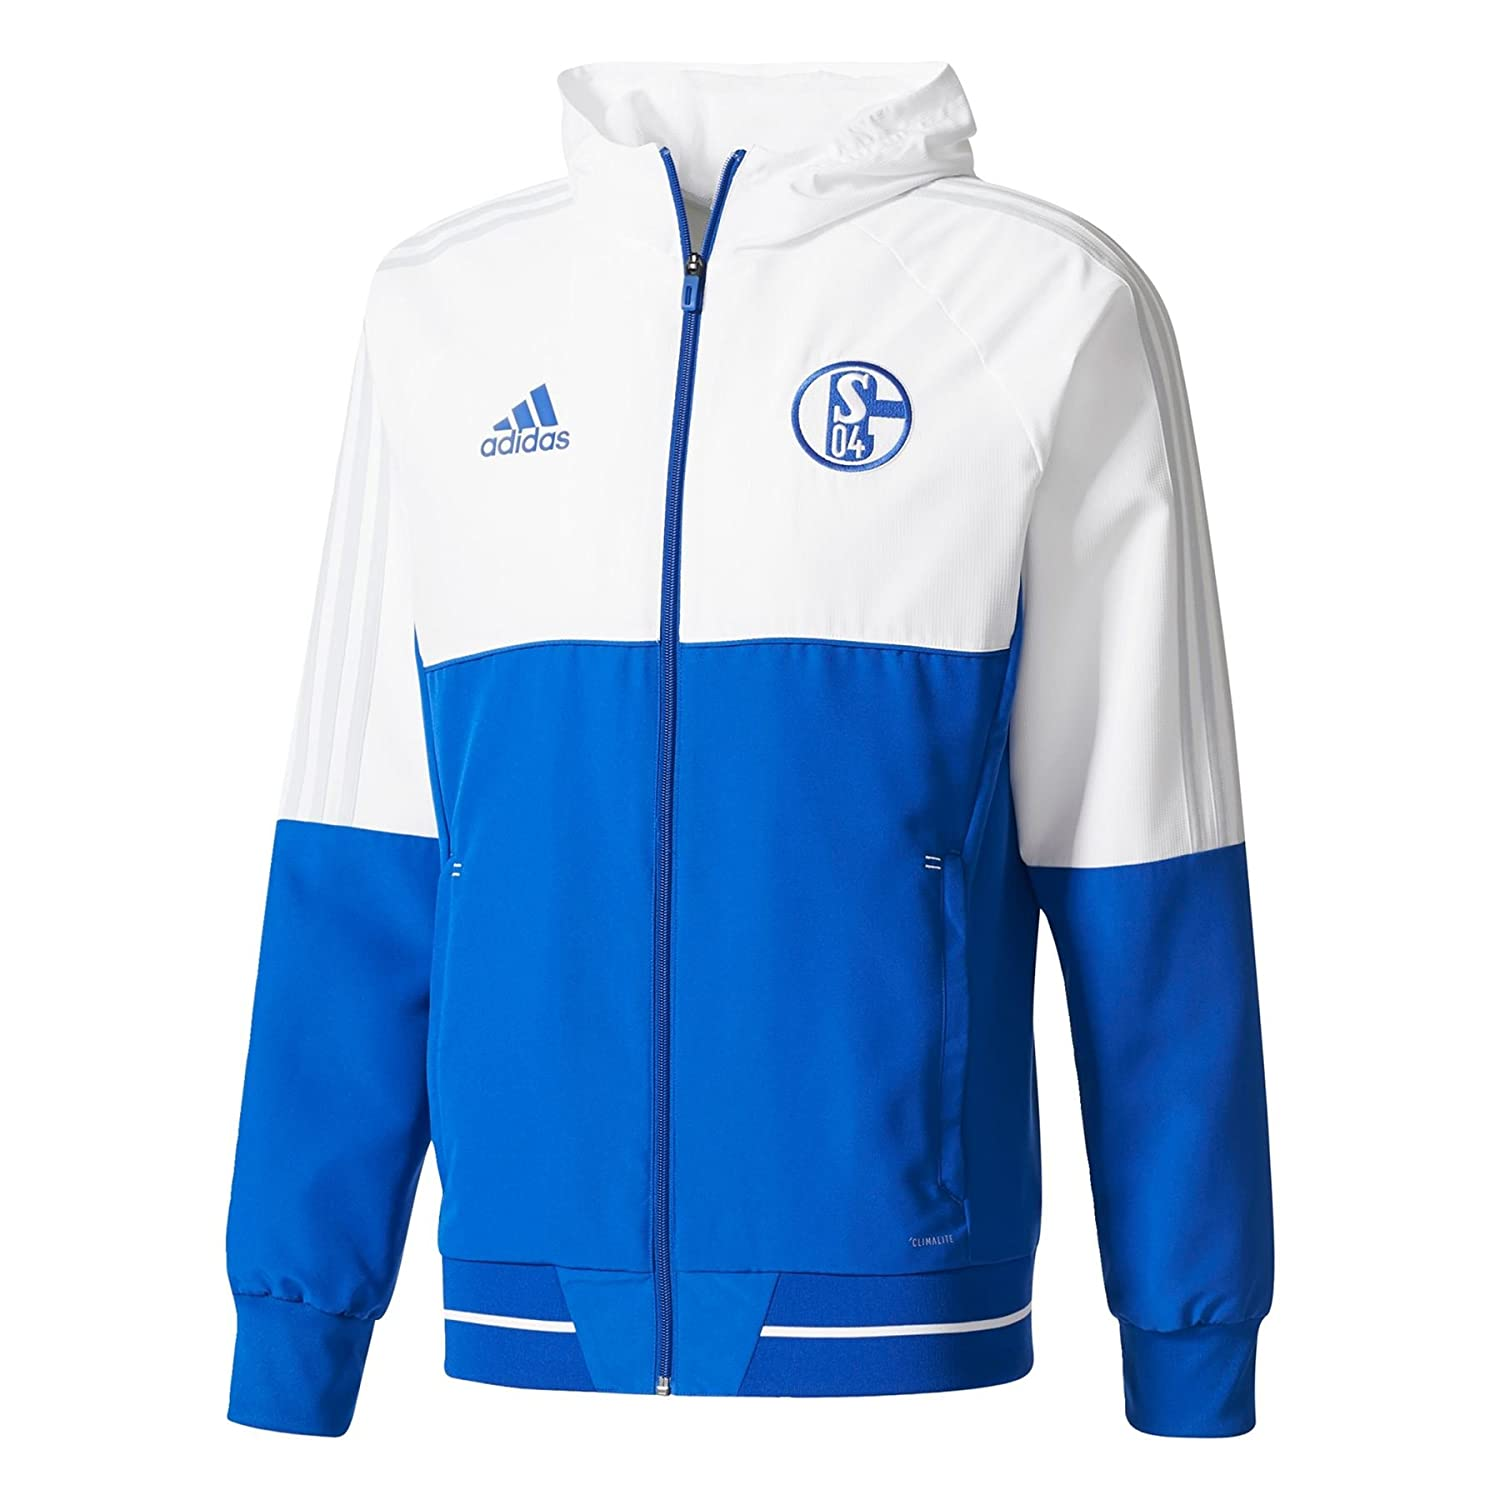 New form of Schalke 04 2017-2018 59